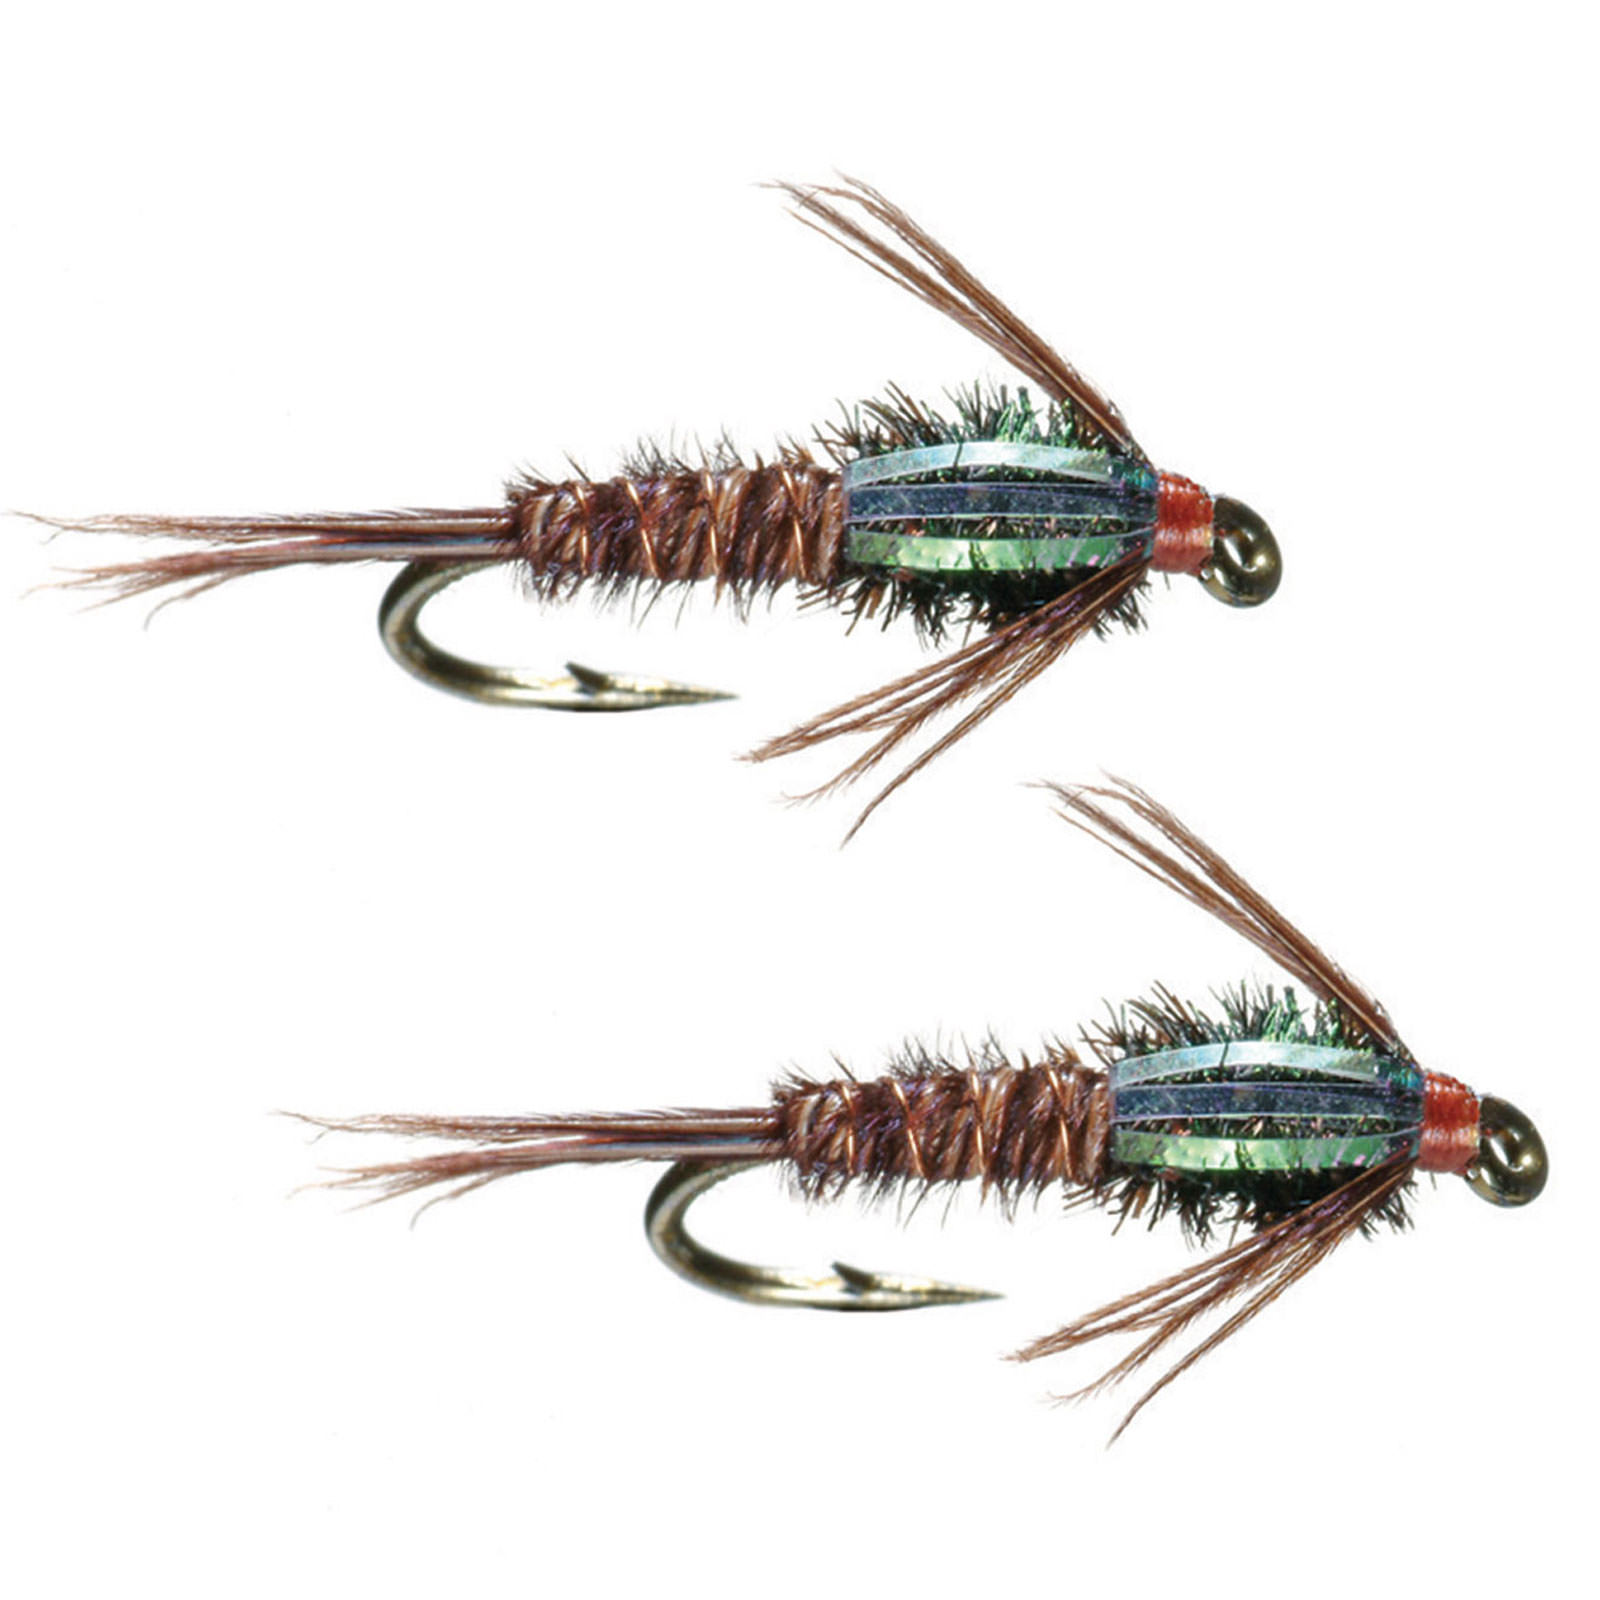 Description for Fly fishing nymphs